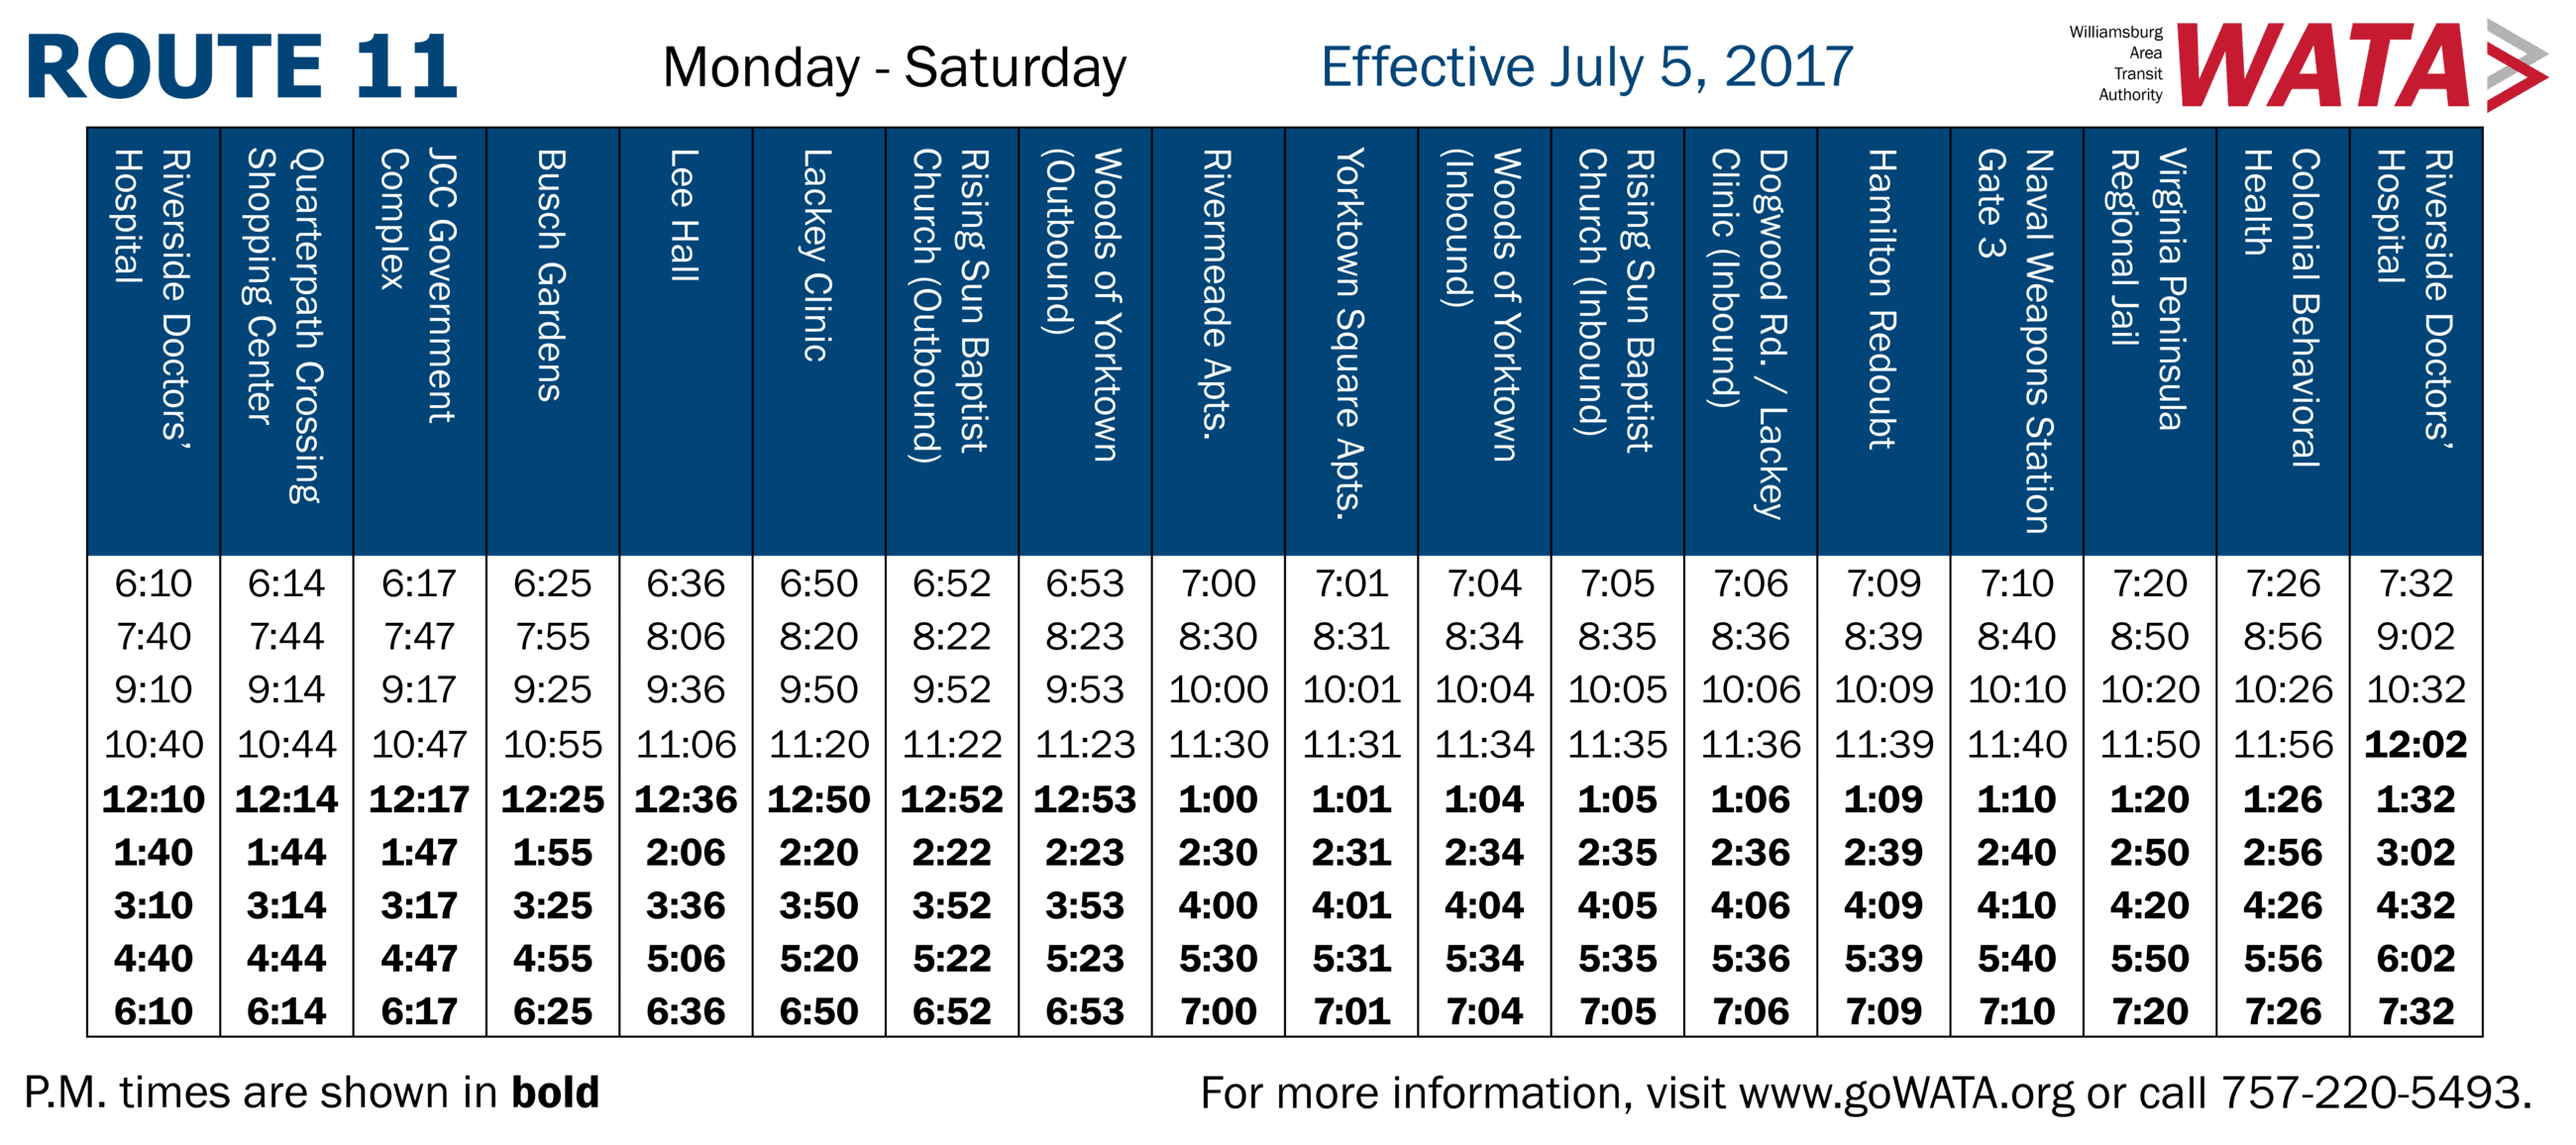 Route 11 Schedule